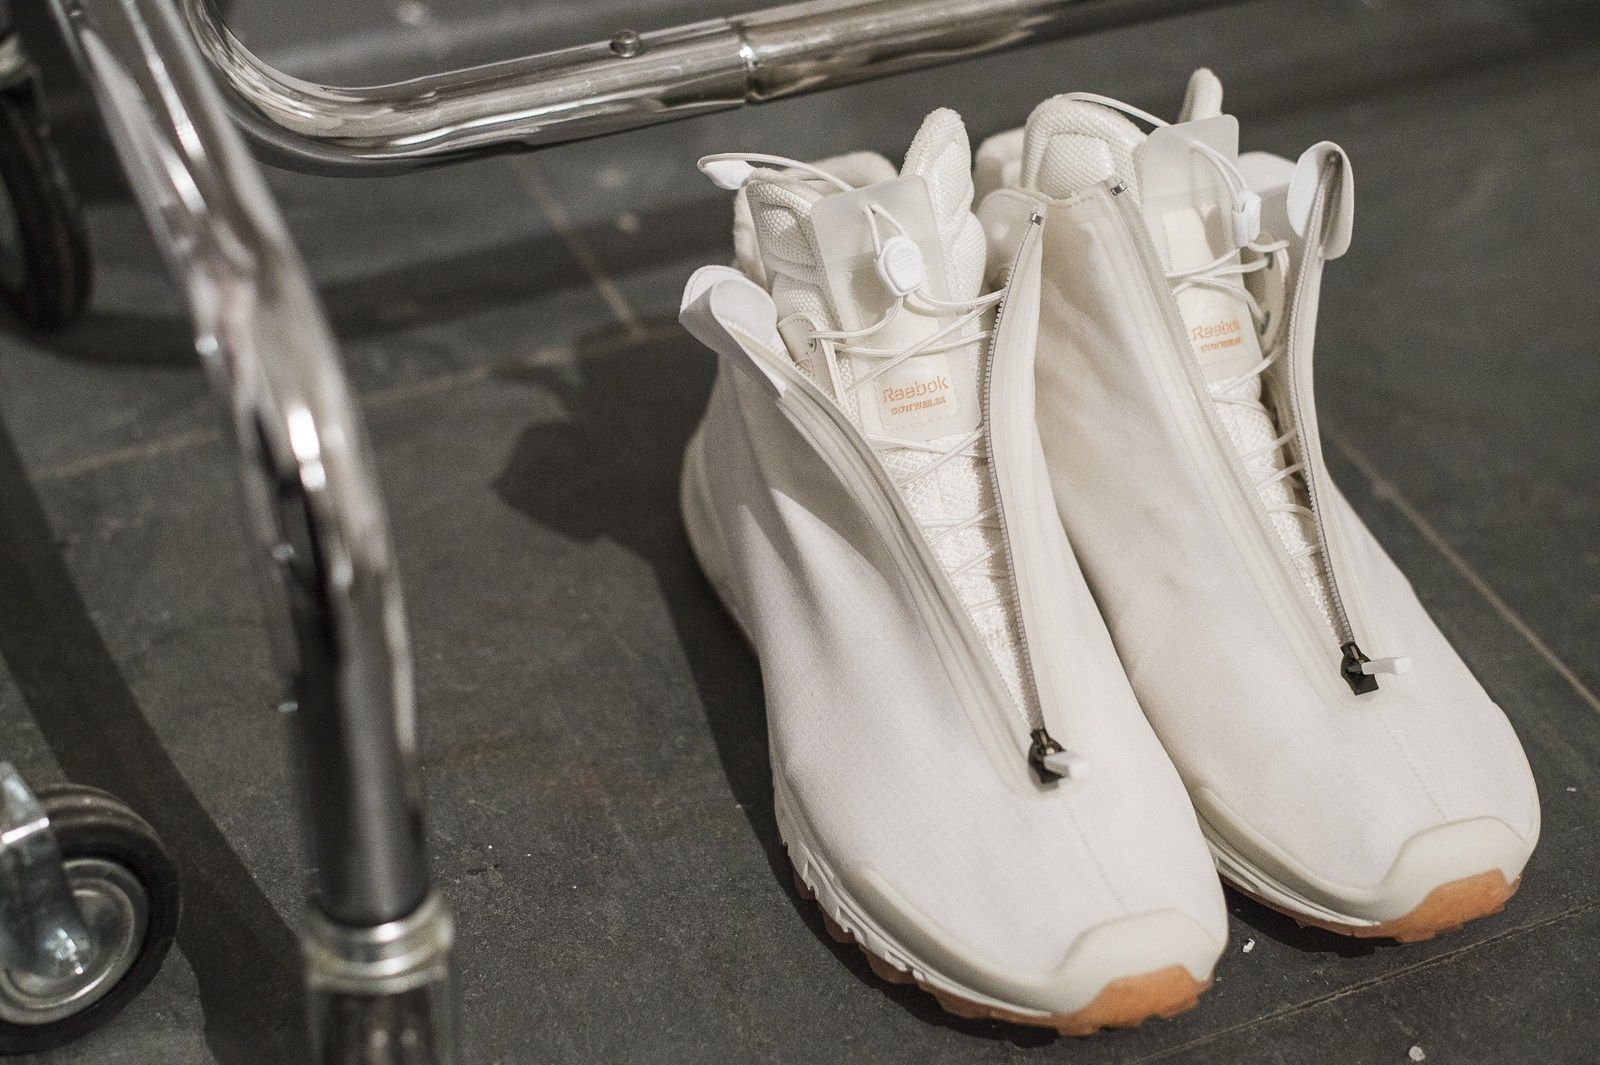 aaaa686401f730 Going Behind the Scenes of the Cottweiler x Reebok Collaboration ...